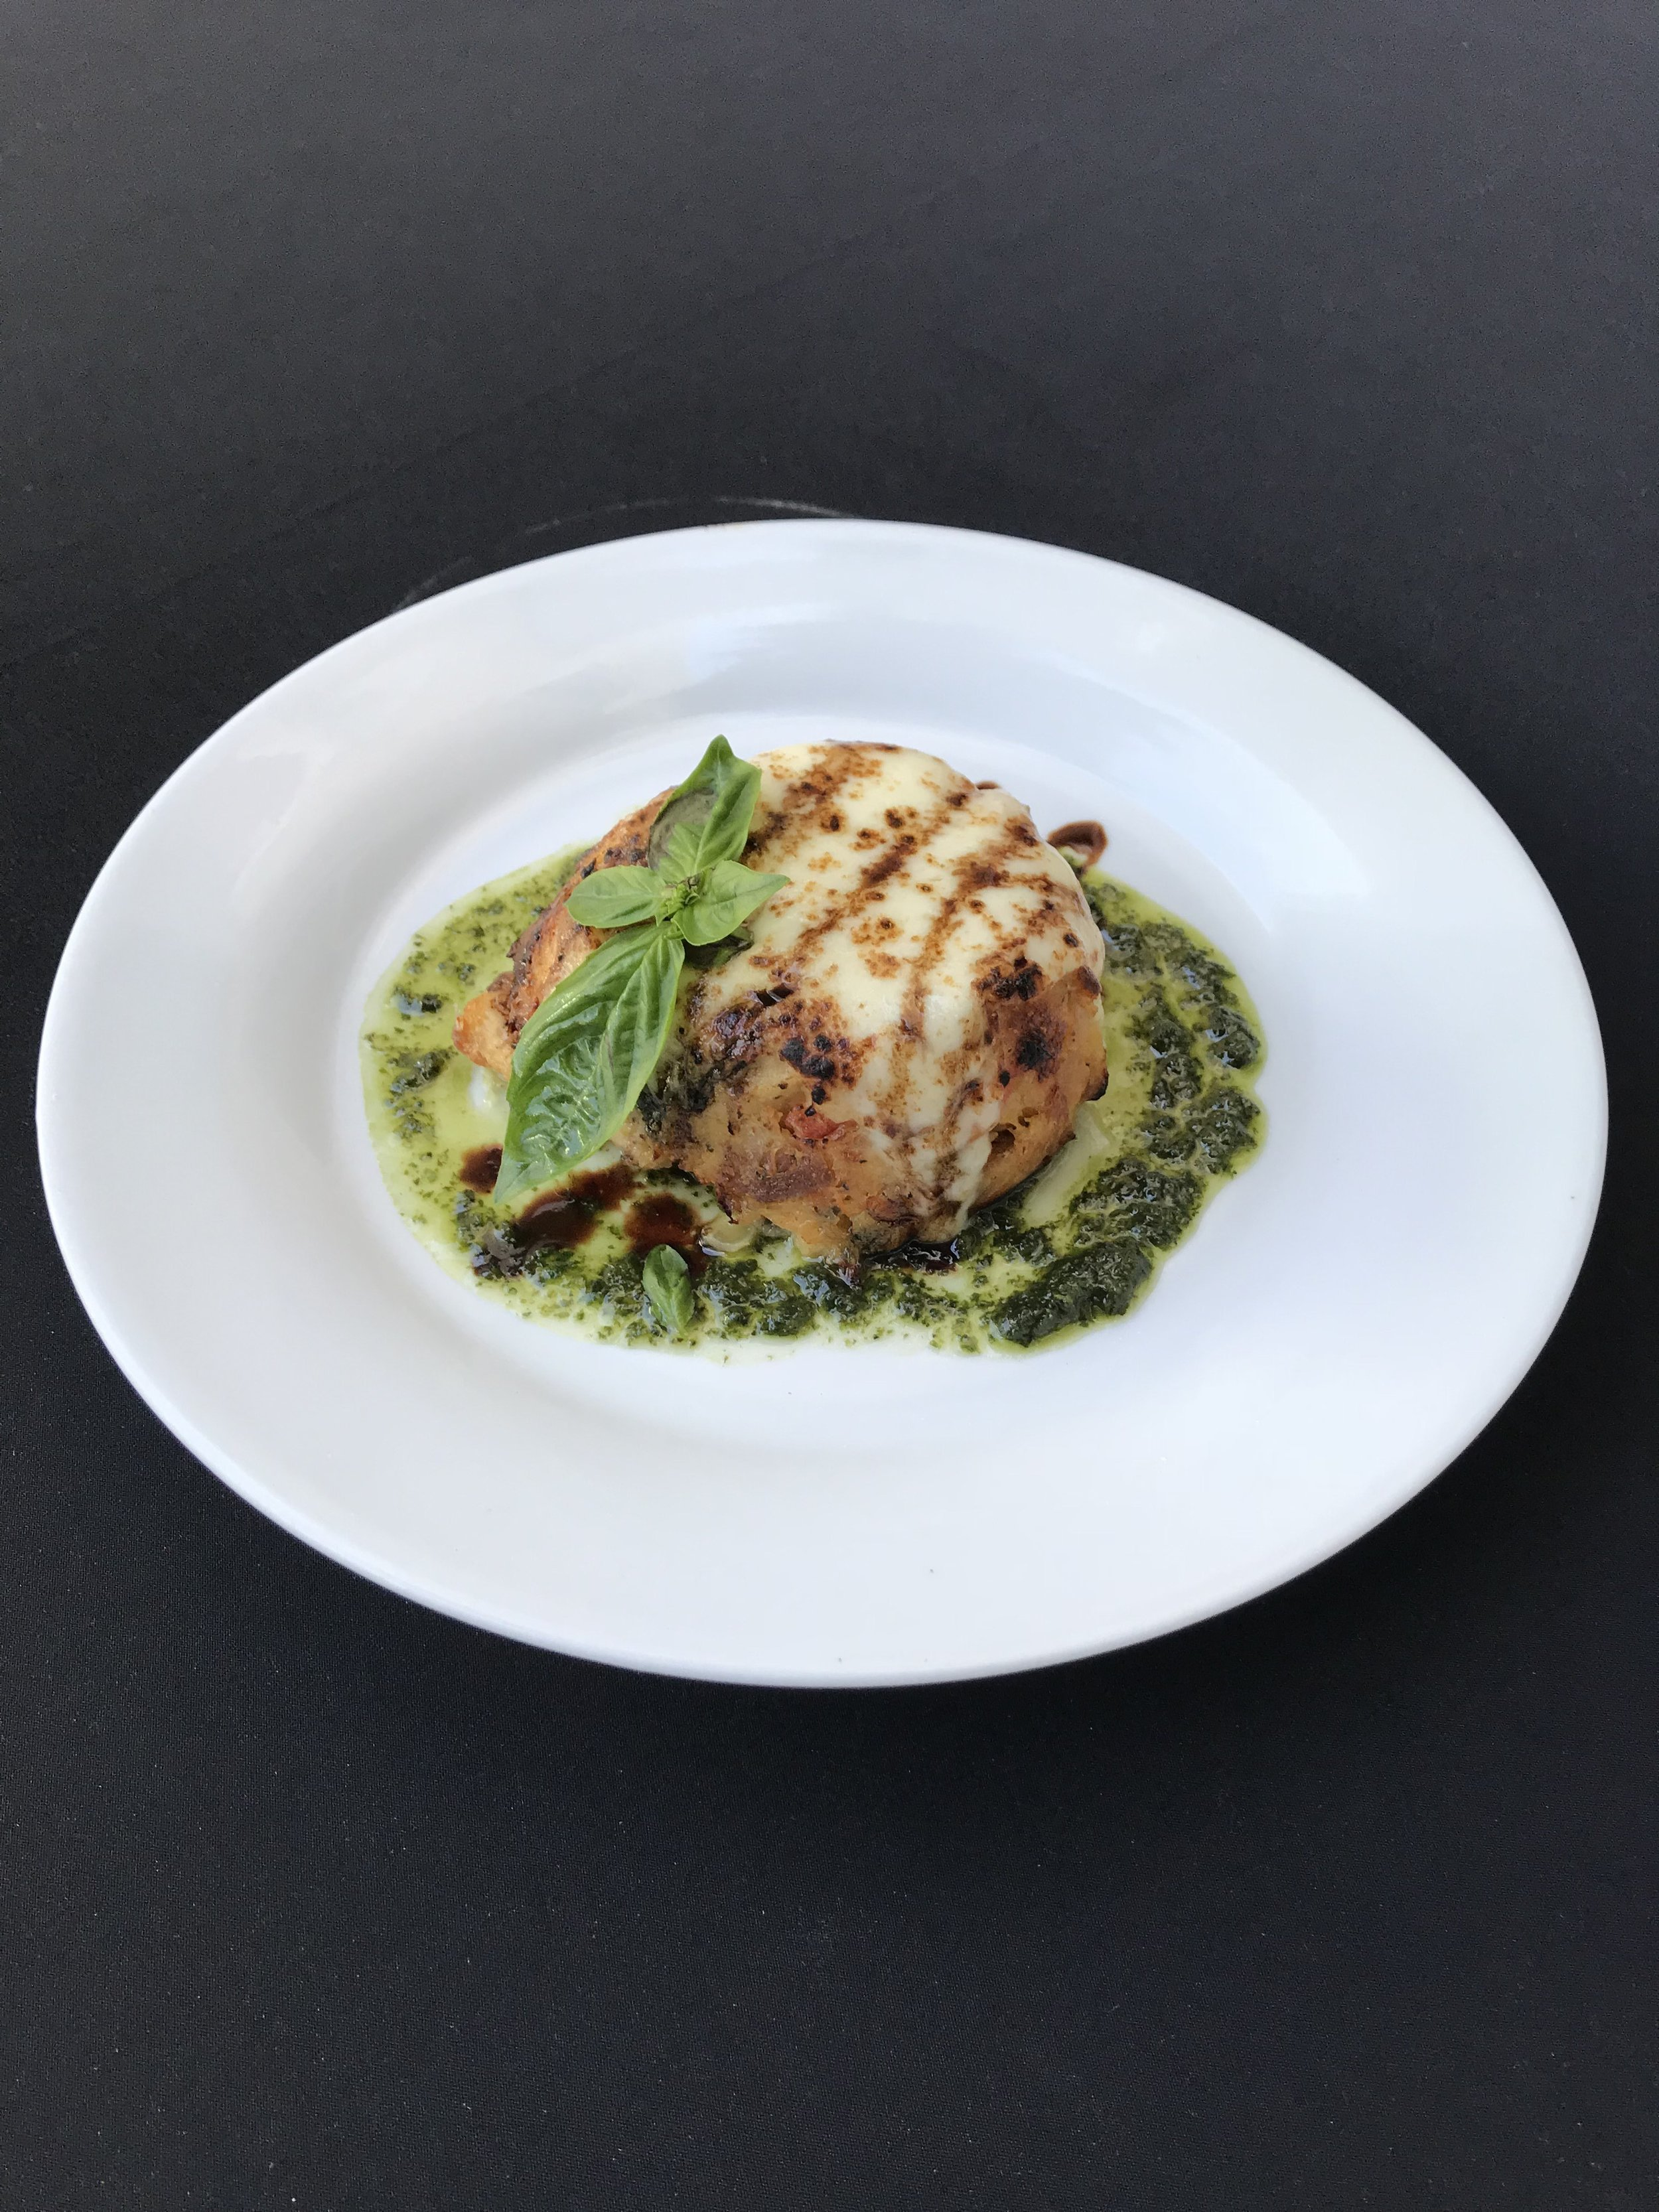 - Tomato Basil PuddingSavory bread pudding with shallot, leek, spinach, and basil, topped with melted mozzarella cheese